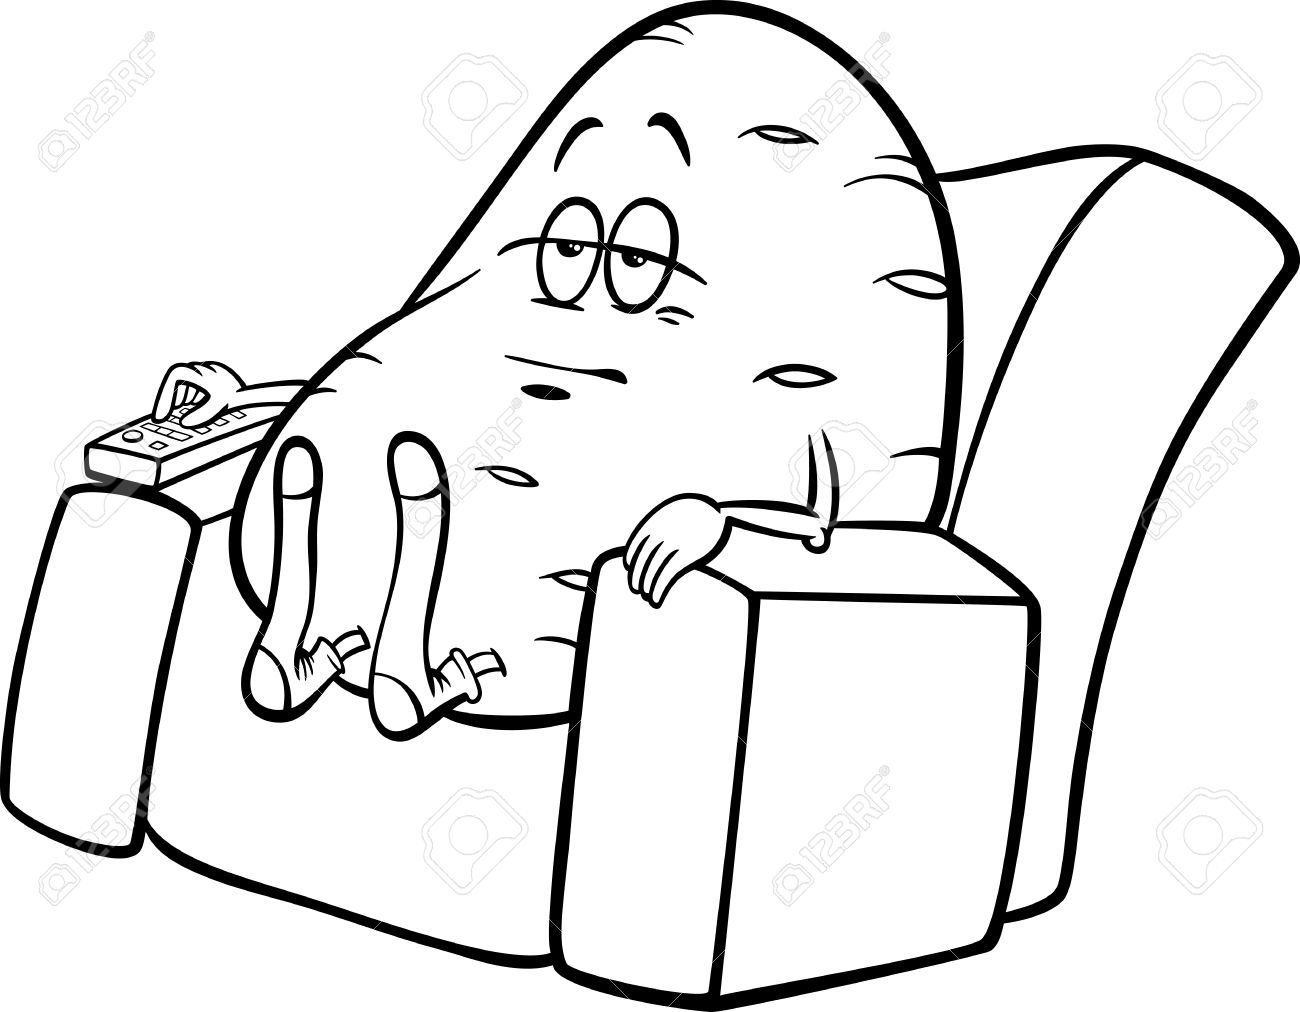 hight resolution of black and white cartoon humor concept illustration of couch potato saying or proverb for coloring book